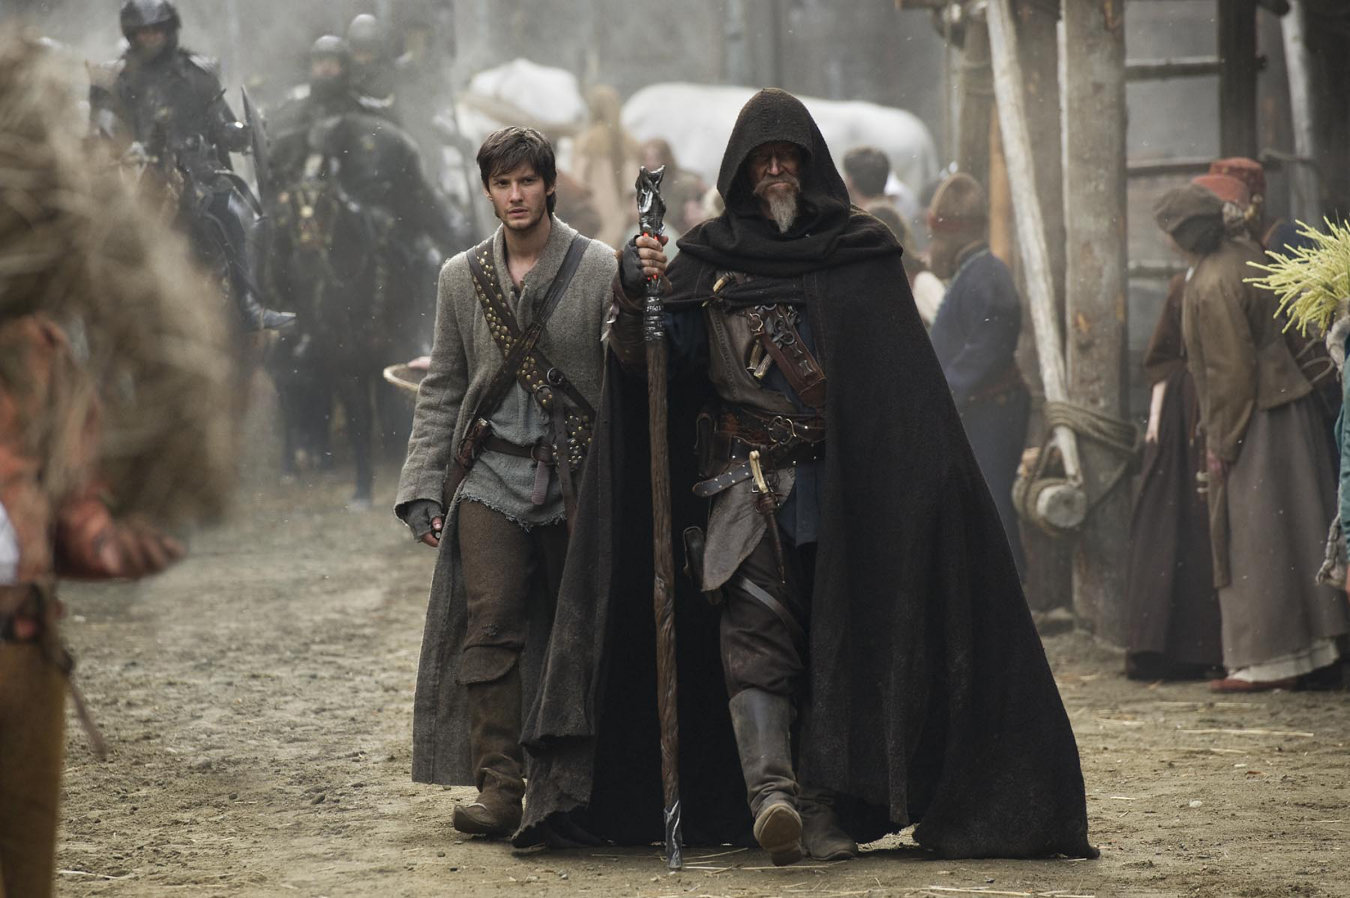 5-clips-from-the-fantasy-adventure-film-seventh-son-with-jeff-bridges